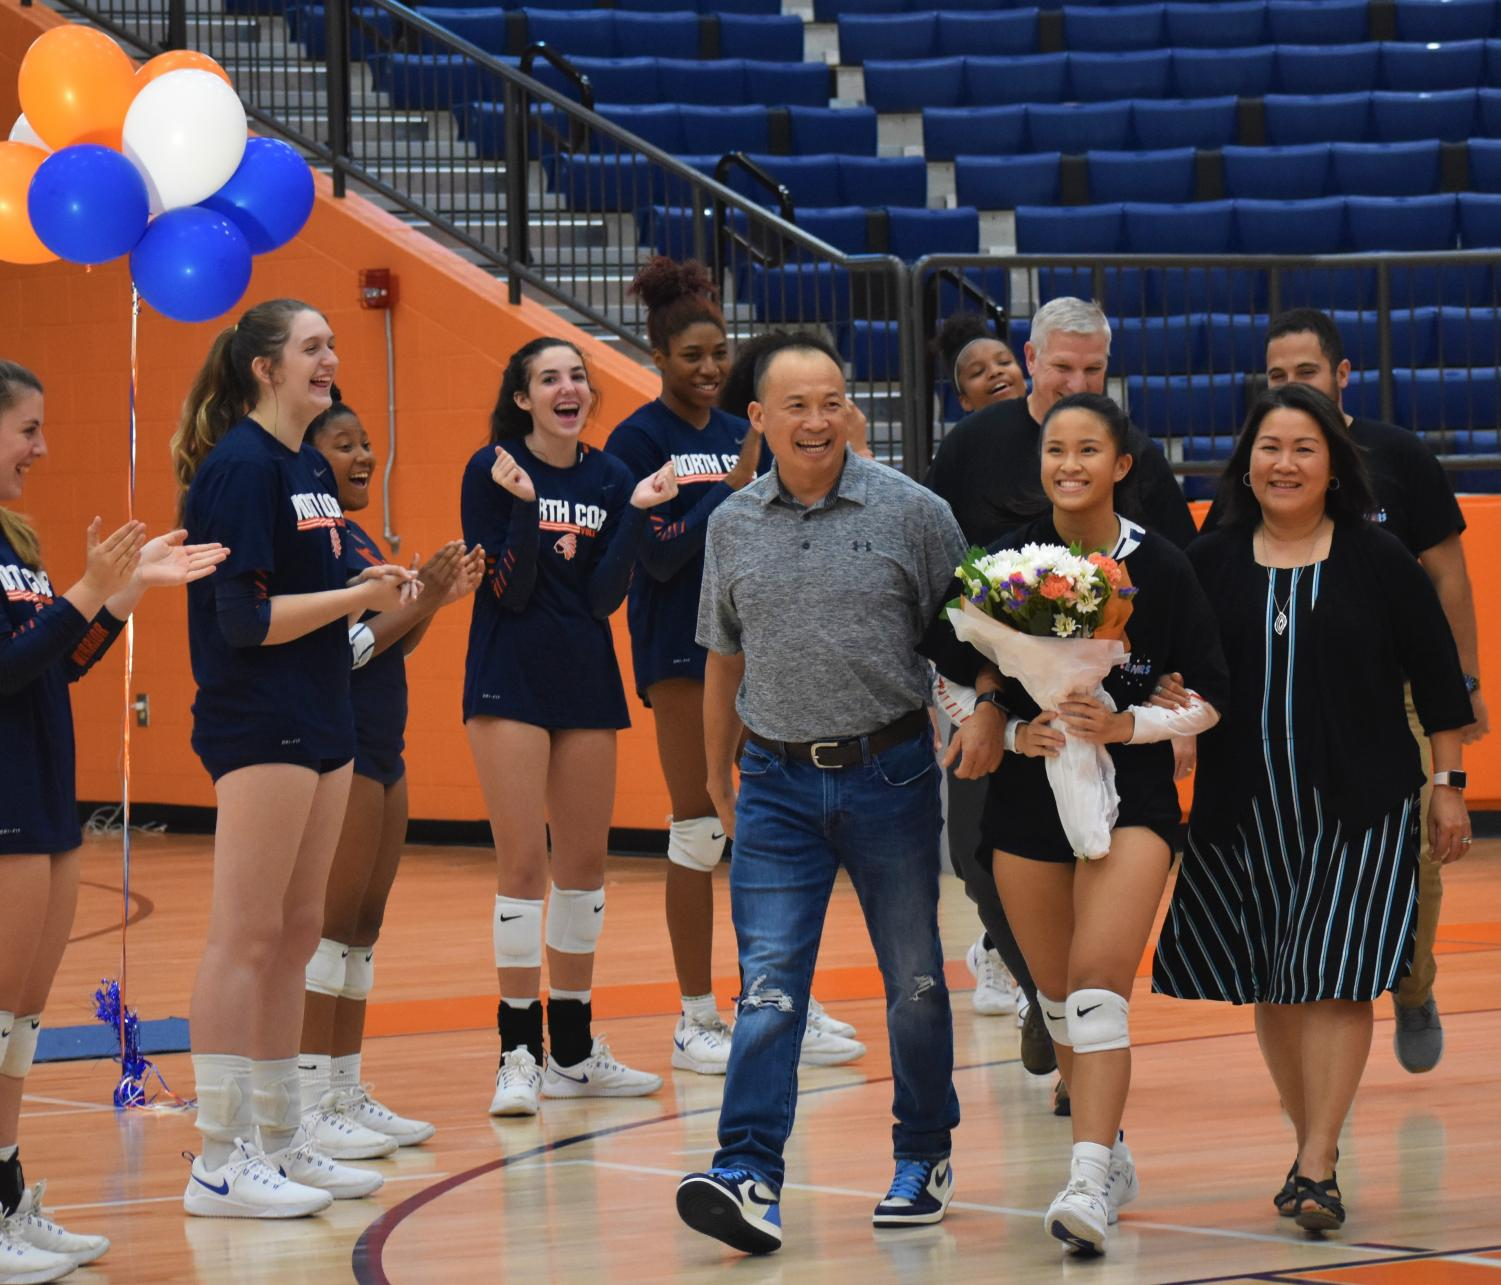 """Escorted by her parents and older brother, Tran received overwhelming recognition for her four years playing as a varsity volleyball player on Thursday night. The stands, full of Tran's best friends enthusiastically cheered on their friend as they listened to her favorite high school memories and her aspirations for the future. Tran's team will dearly miss one of their favorite teammates when Tran graduates this spring. """"Nicole is our best passer on the team, and she is leaving behind a huge legacy to the NC volleyball program,"""" said junior Ivanova"""